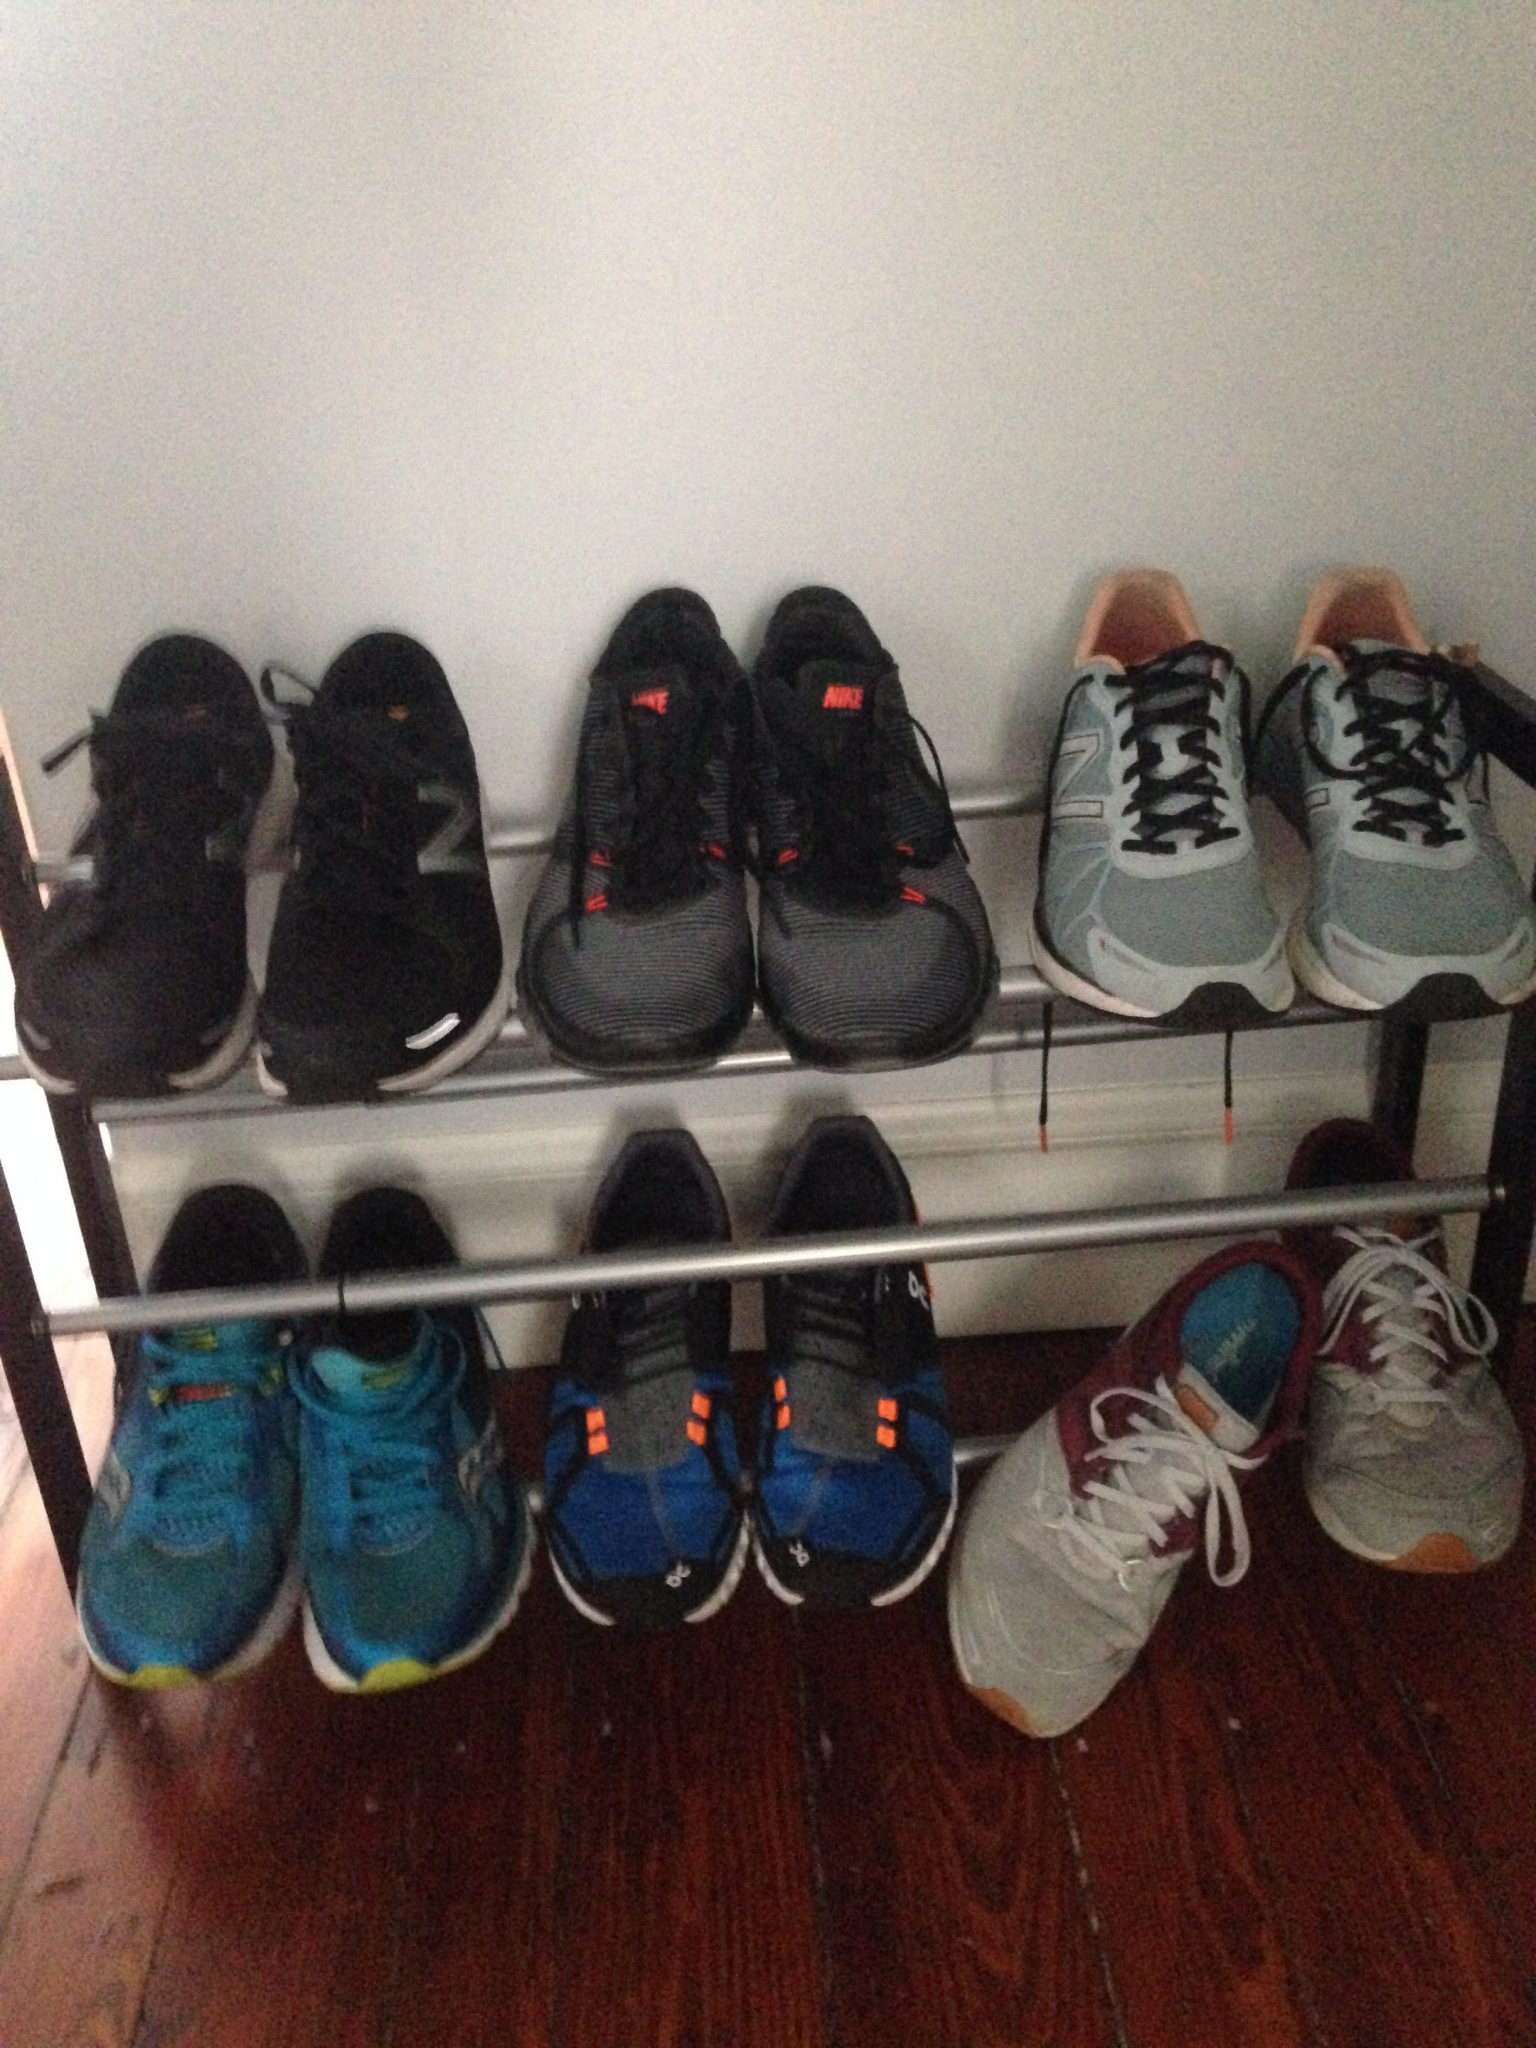 Lose some shoes - how to embrace minimalism